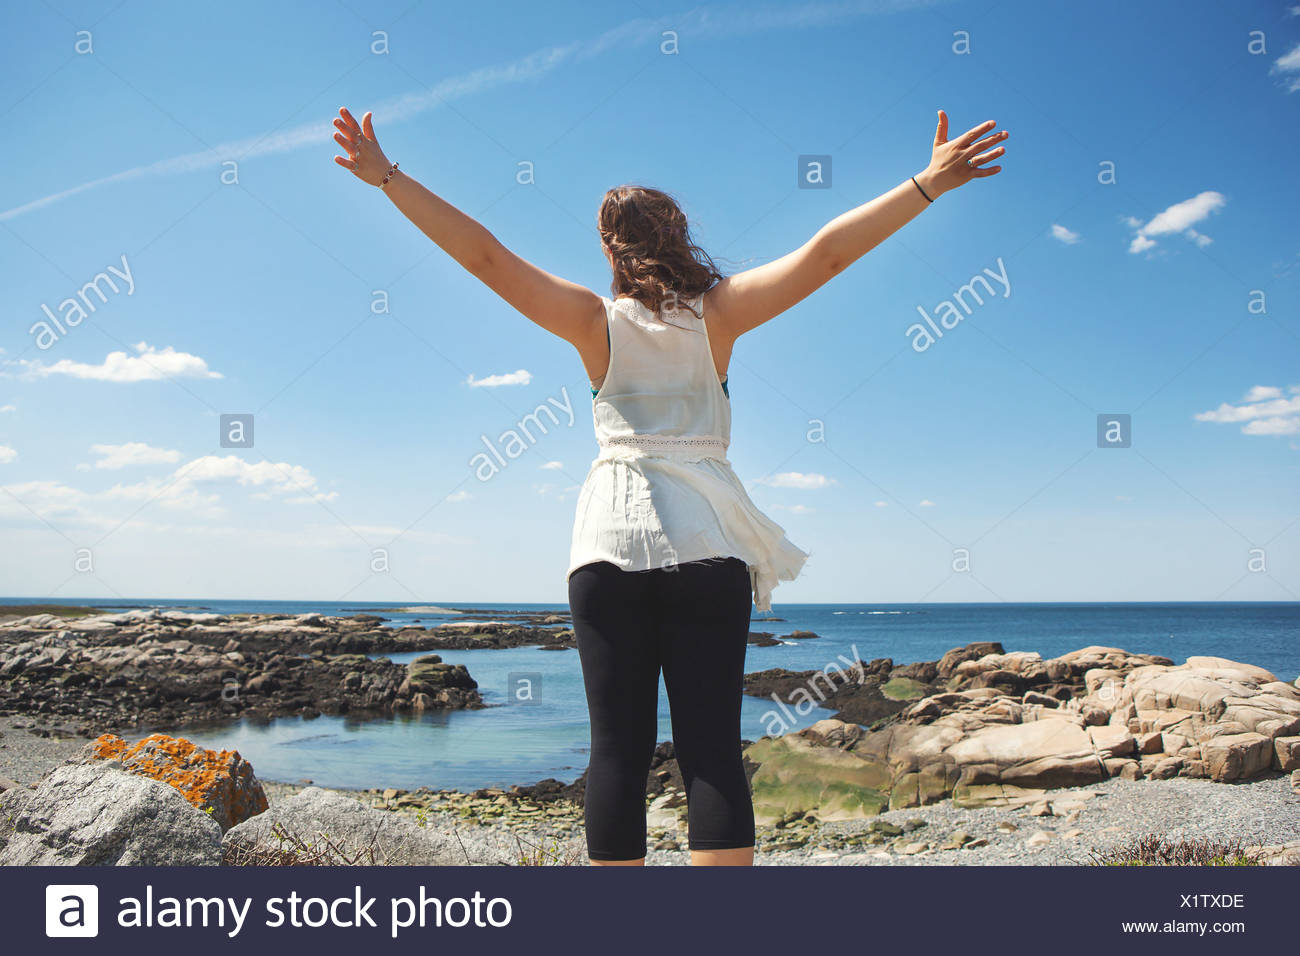 Rear view of young woman at the rocky coastal beach in Biddeford, Maine, USA - Stock Image